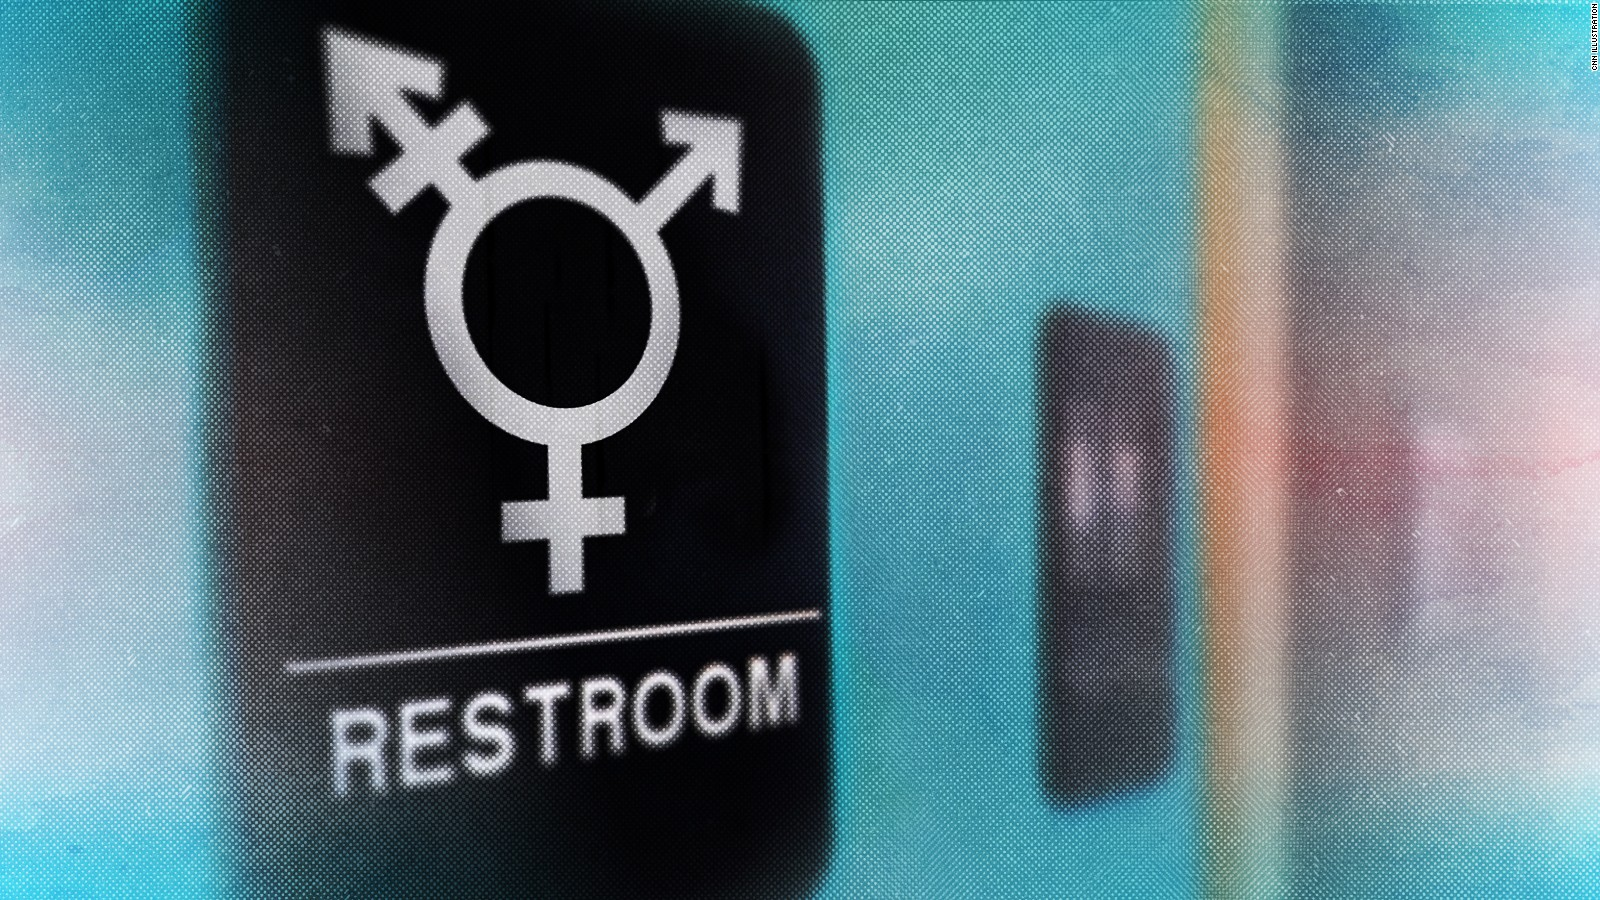 https://i1.wp.com/cdn.cnn.com/cnnnext/dam/assets/160516090647-transgender-bathroom-graphic-4-full-169.jpg